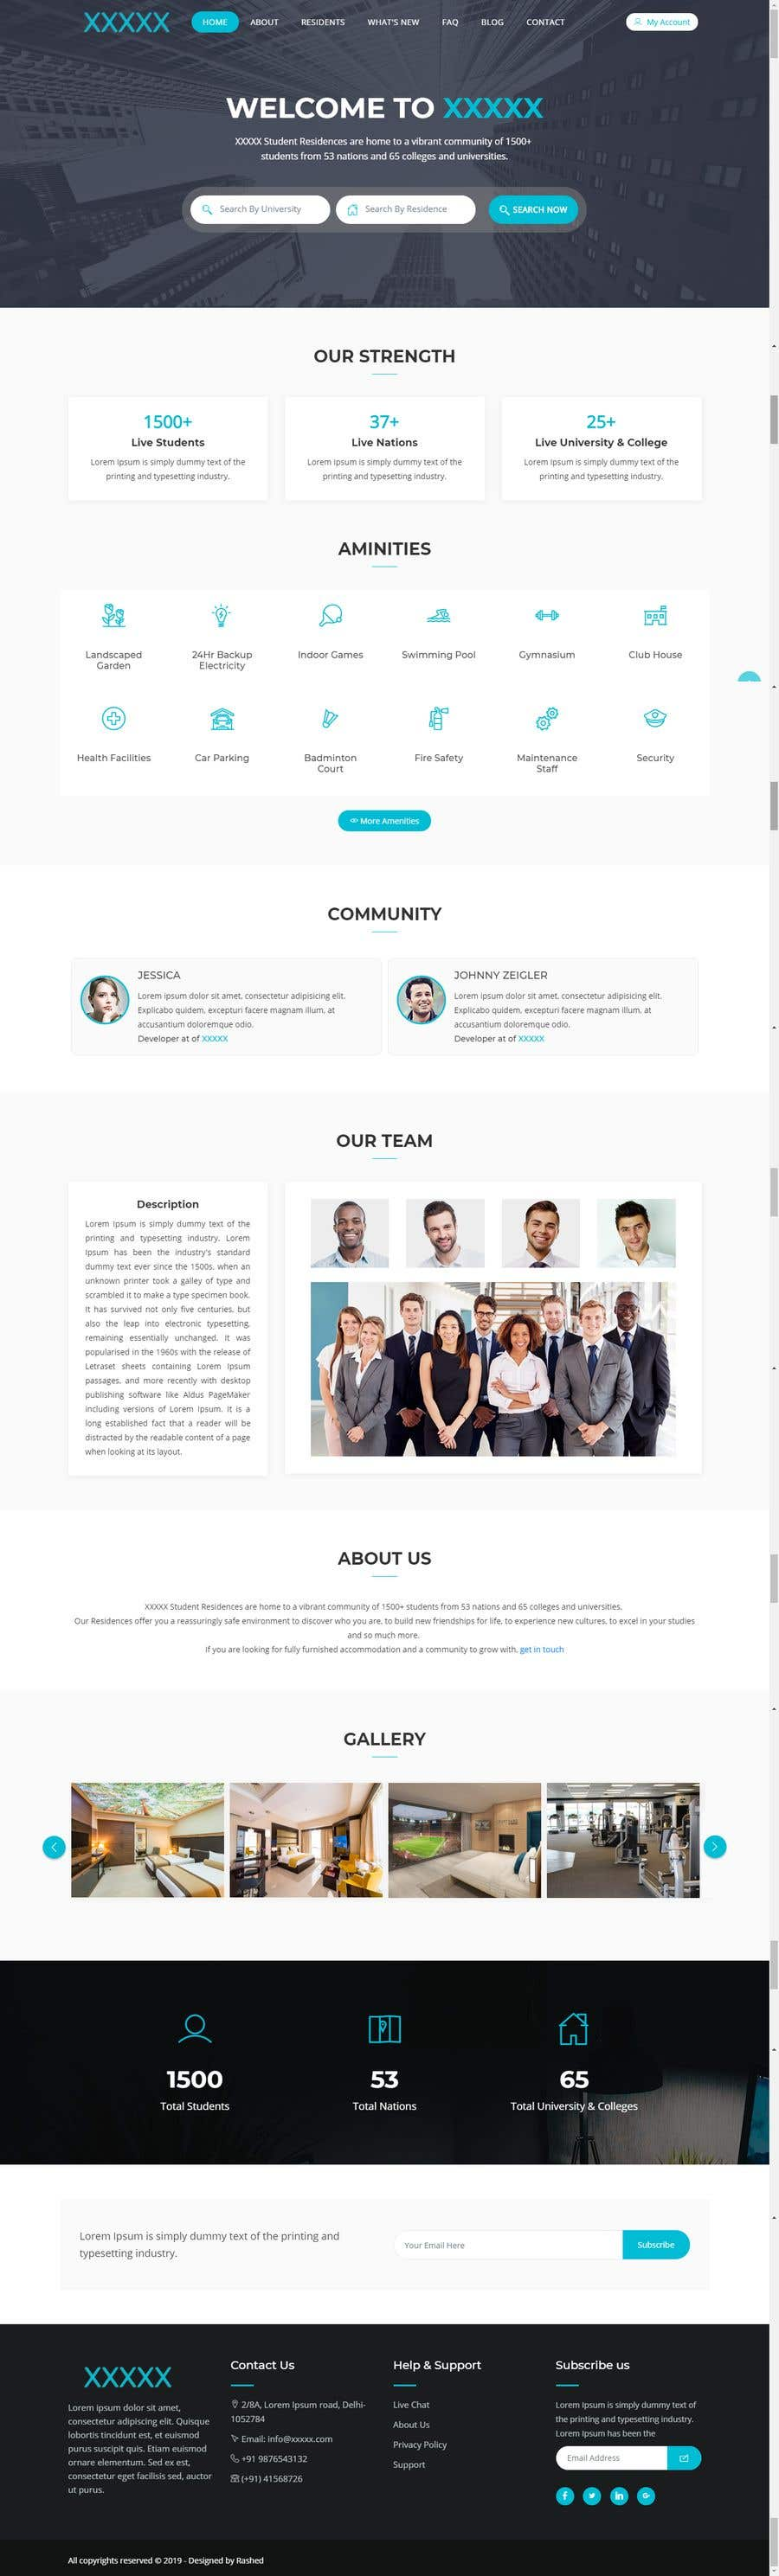 Penyertaan Peraduan #74 untuk Building a 2 pages of Website UI & UX. Best entry to get opportunity for completing 70+ screens UI & UX as well.